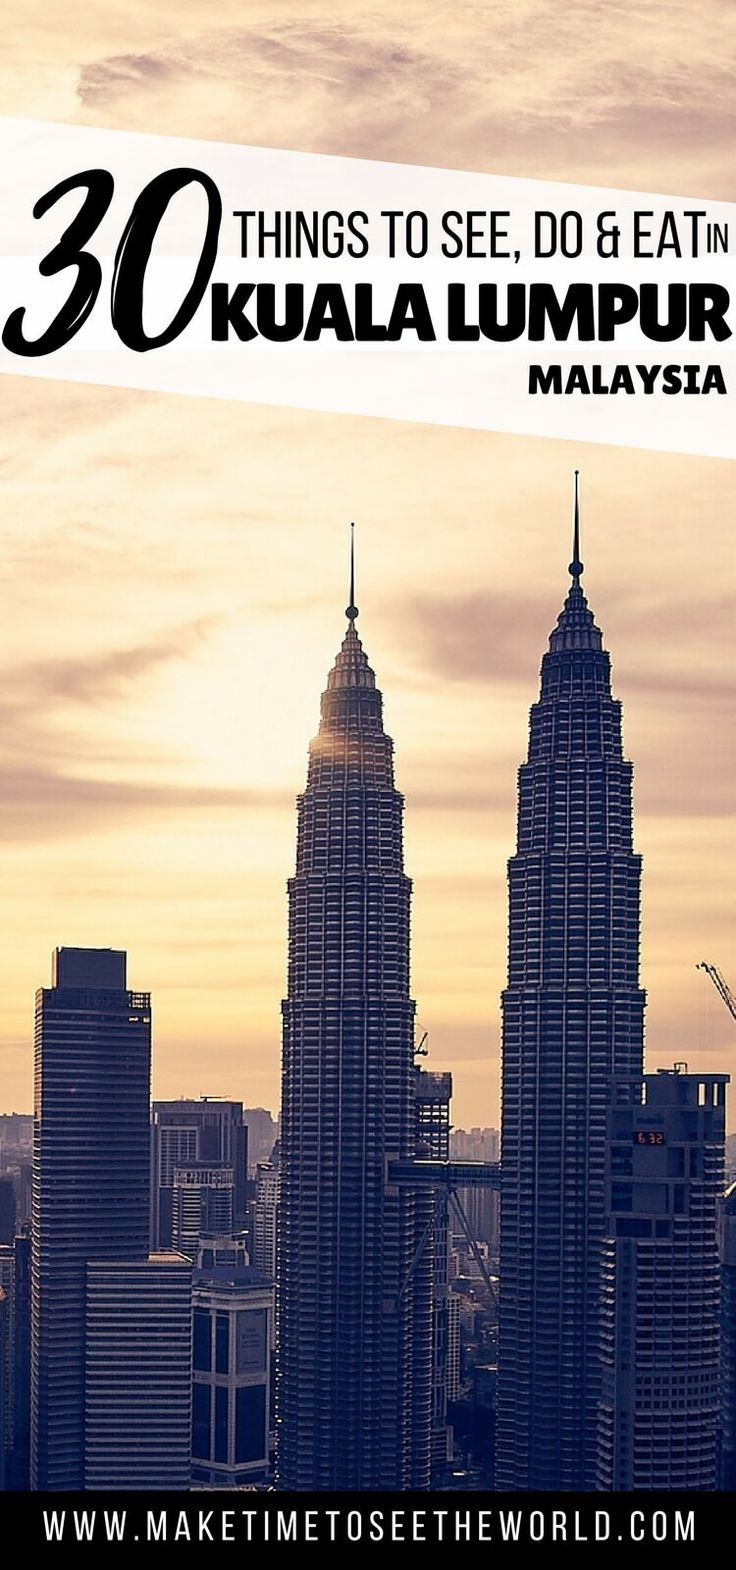 Wondering what to do in KL besides the Batu Caves & Petronas Towers? This guide to where to stay, eat & Top Things to do in Kuala Lumpur has you covered! ***** Malaysia | Kuala Lumpur | KL | THings to do in Kuala Lumpur | Kuala Lumpur Tourist Attractions | What to do in Kuala Lumpur | KL Tourist Attractions | Things to do in KL | #asiatraveltips #kualalumpur #malaysia